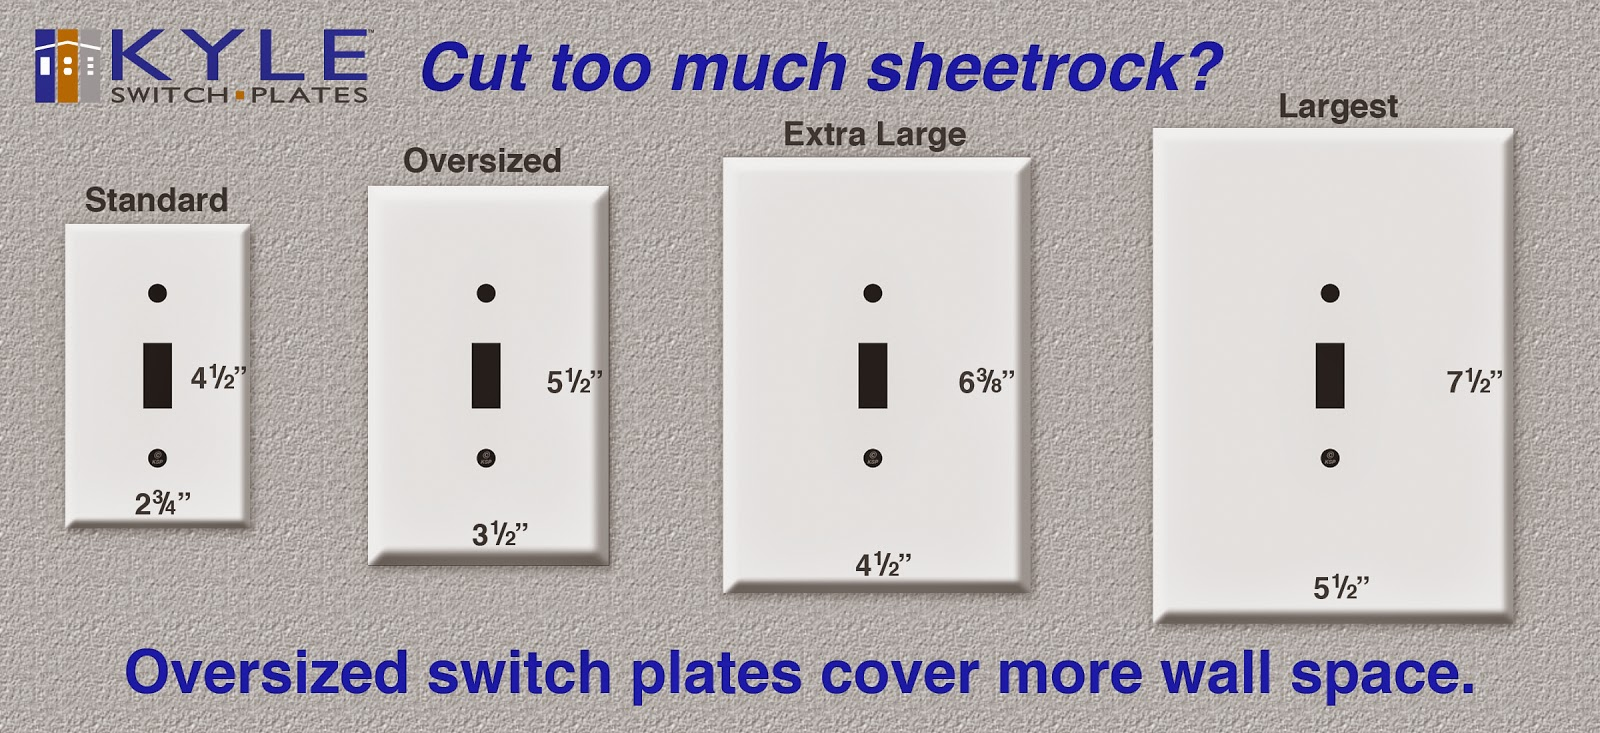 Oversized Outlet Covers Kyle Switch Plates 2014